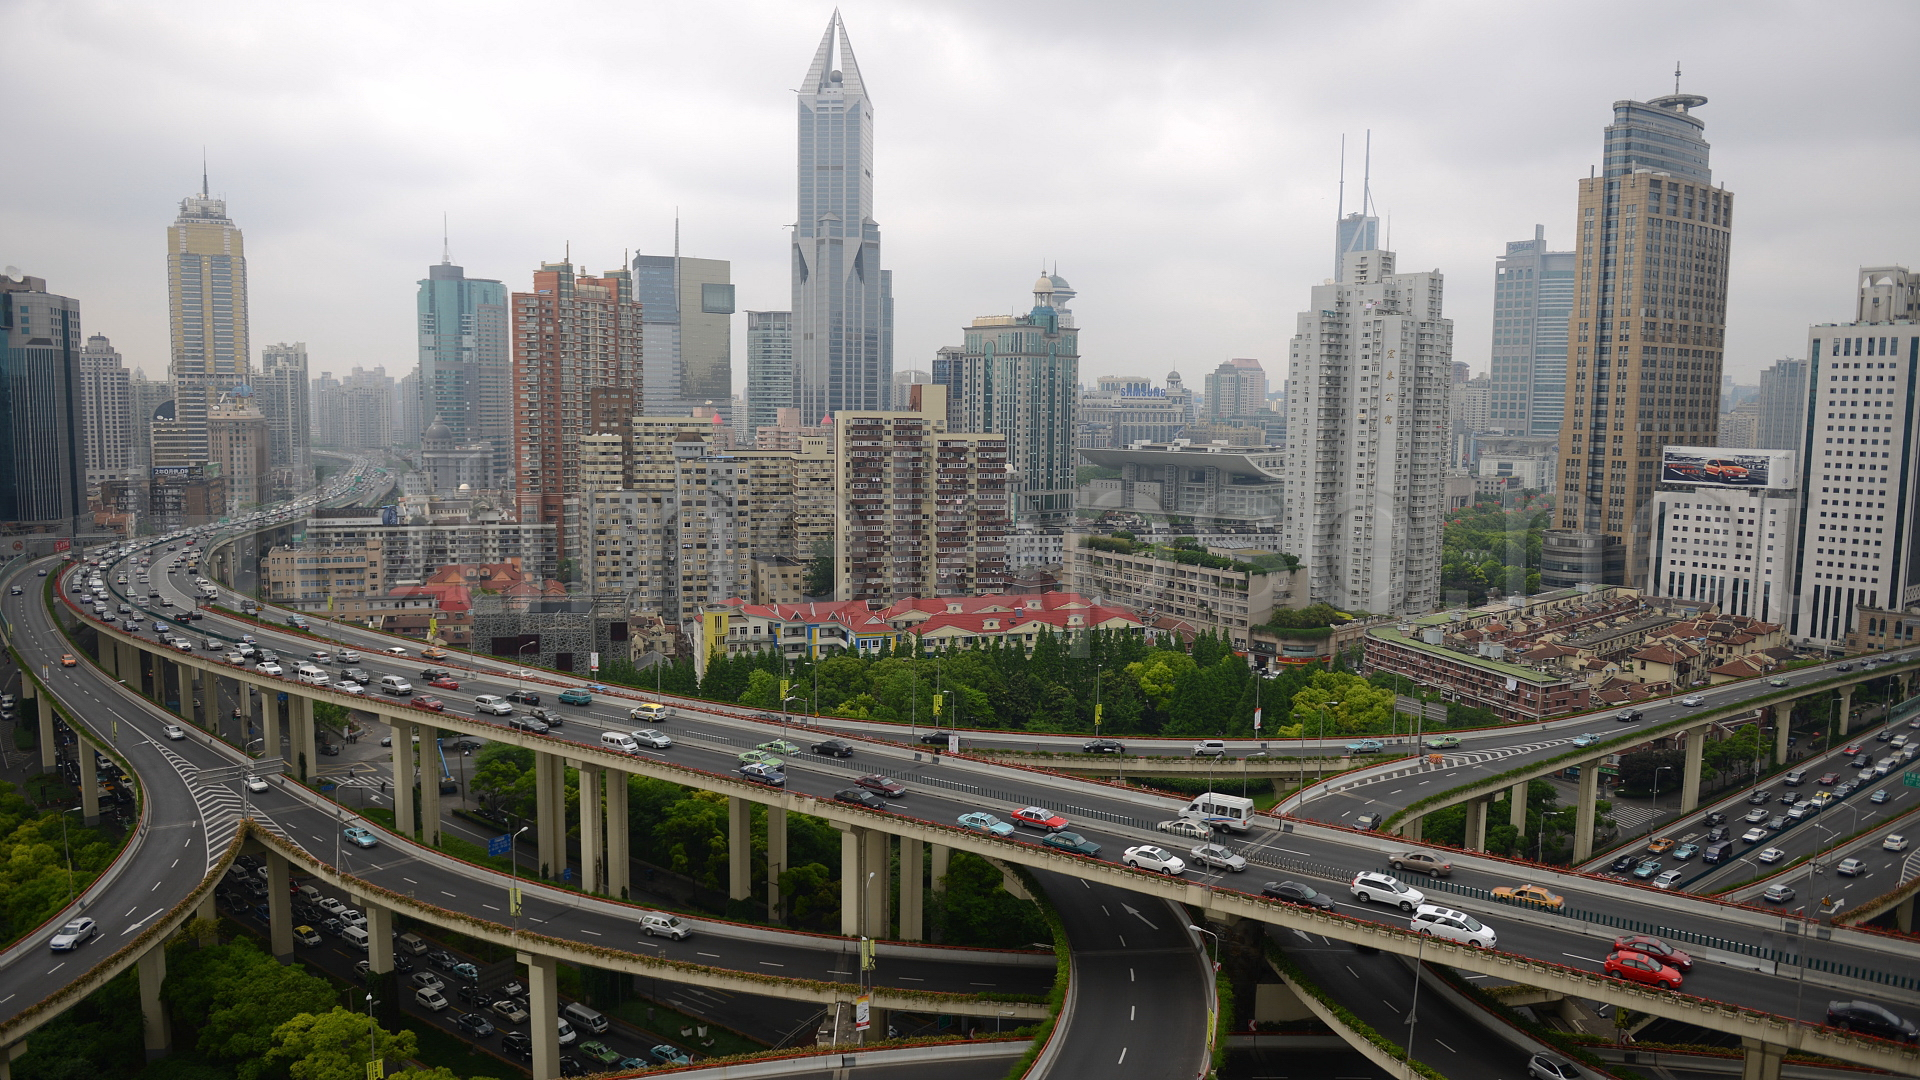 City 5183. Aerial View of JW Marriott Hotel Shanghai, Nan Zheng Building, Yan an East Road Overpass Shanghai - China 00:00:30